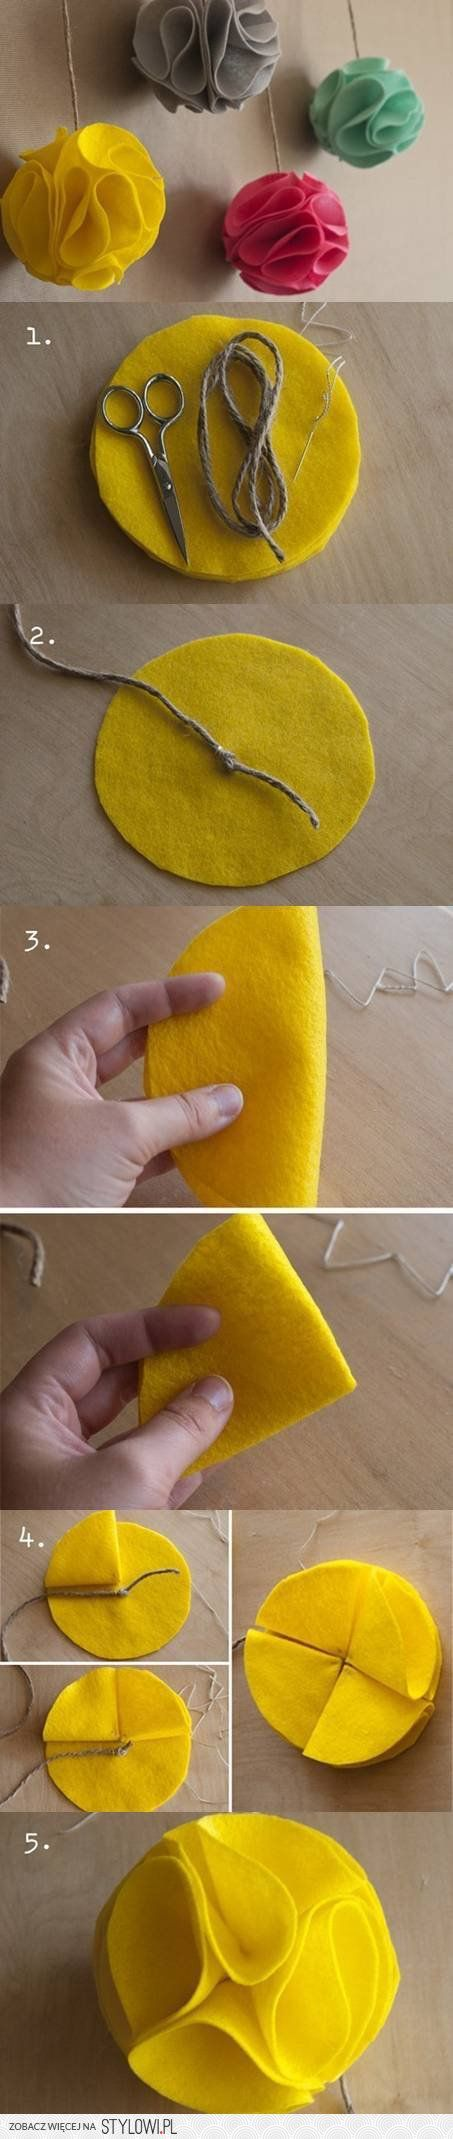 DIY Felt Decorative Balls DIY Projects | UsefulDIY.com na Stylowi.pl